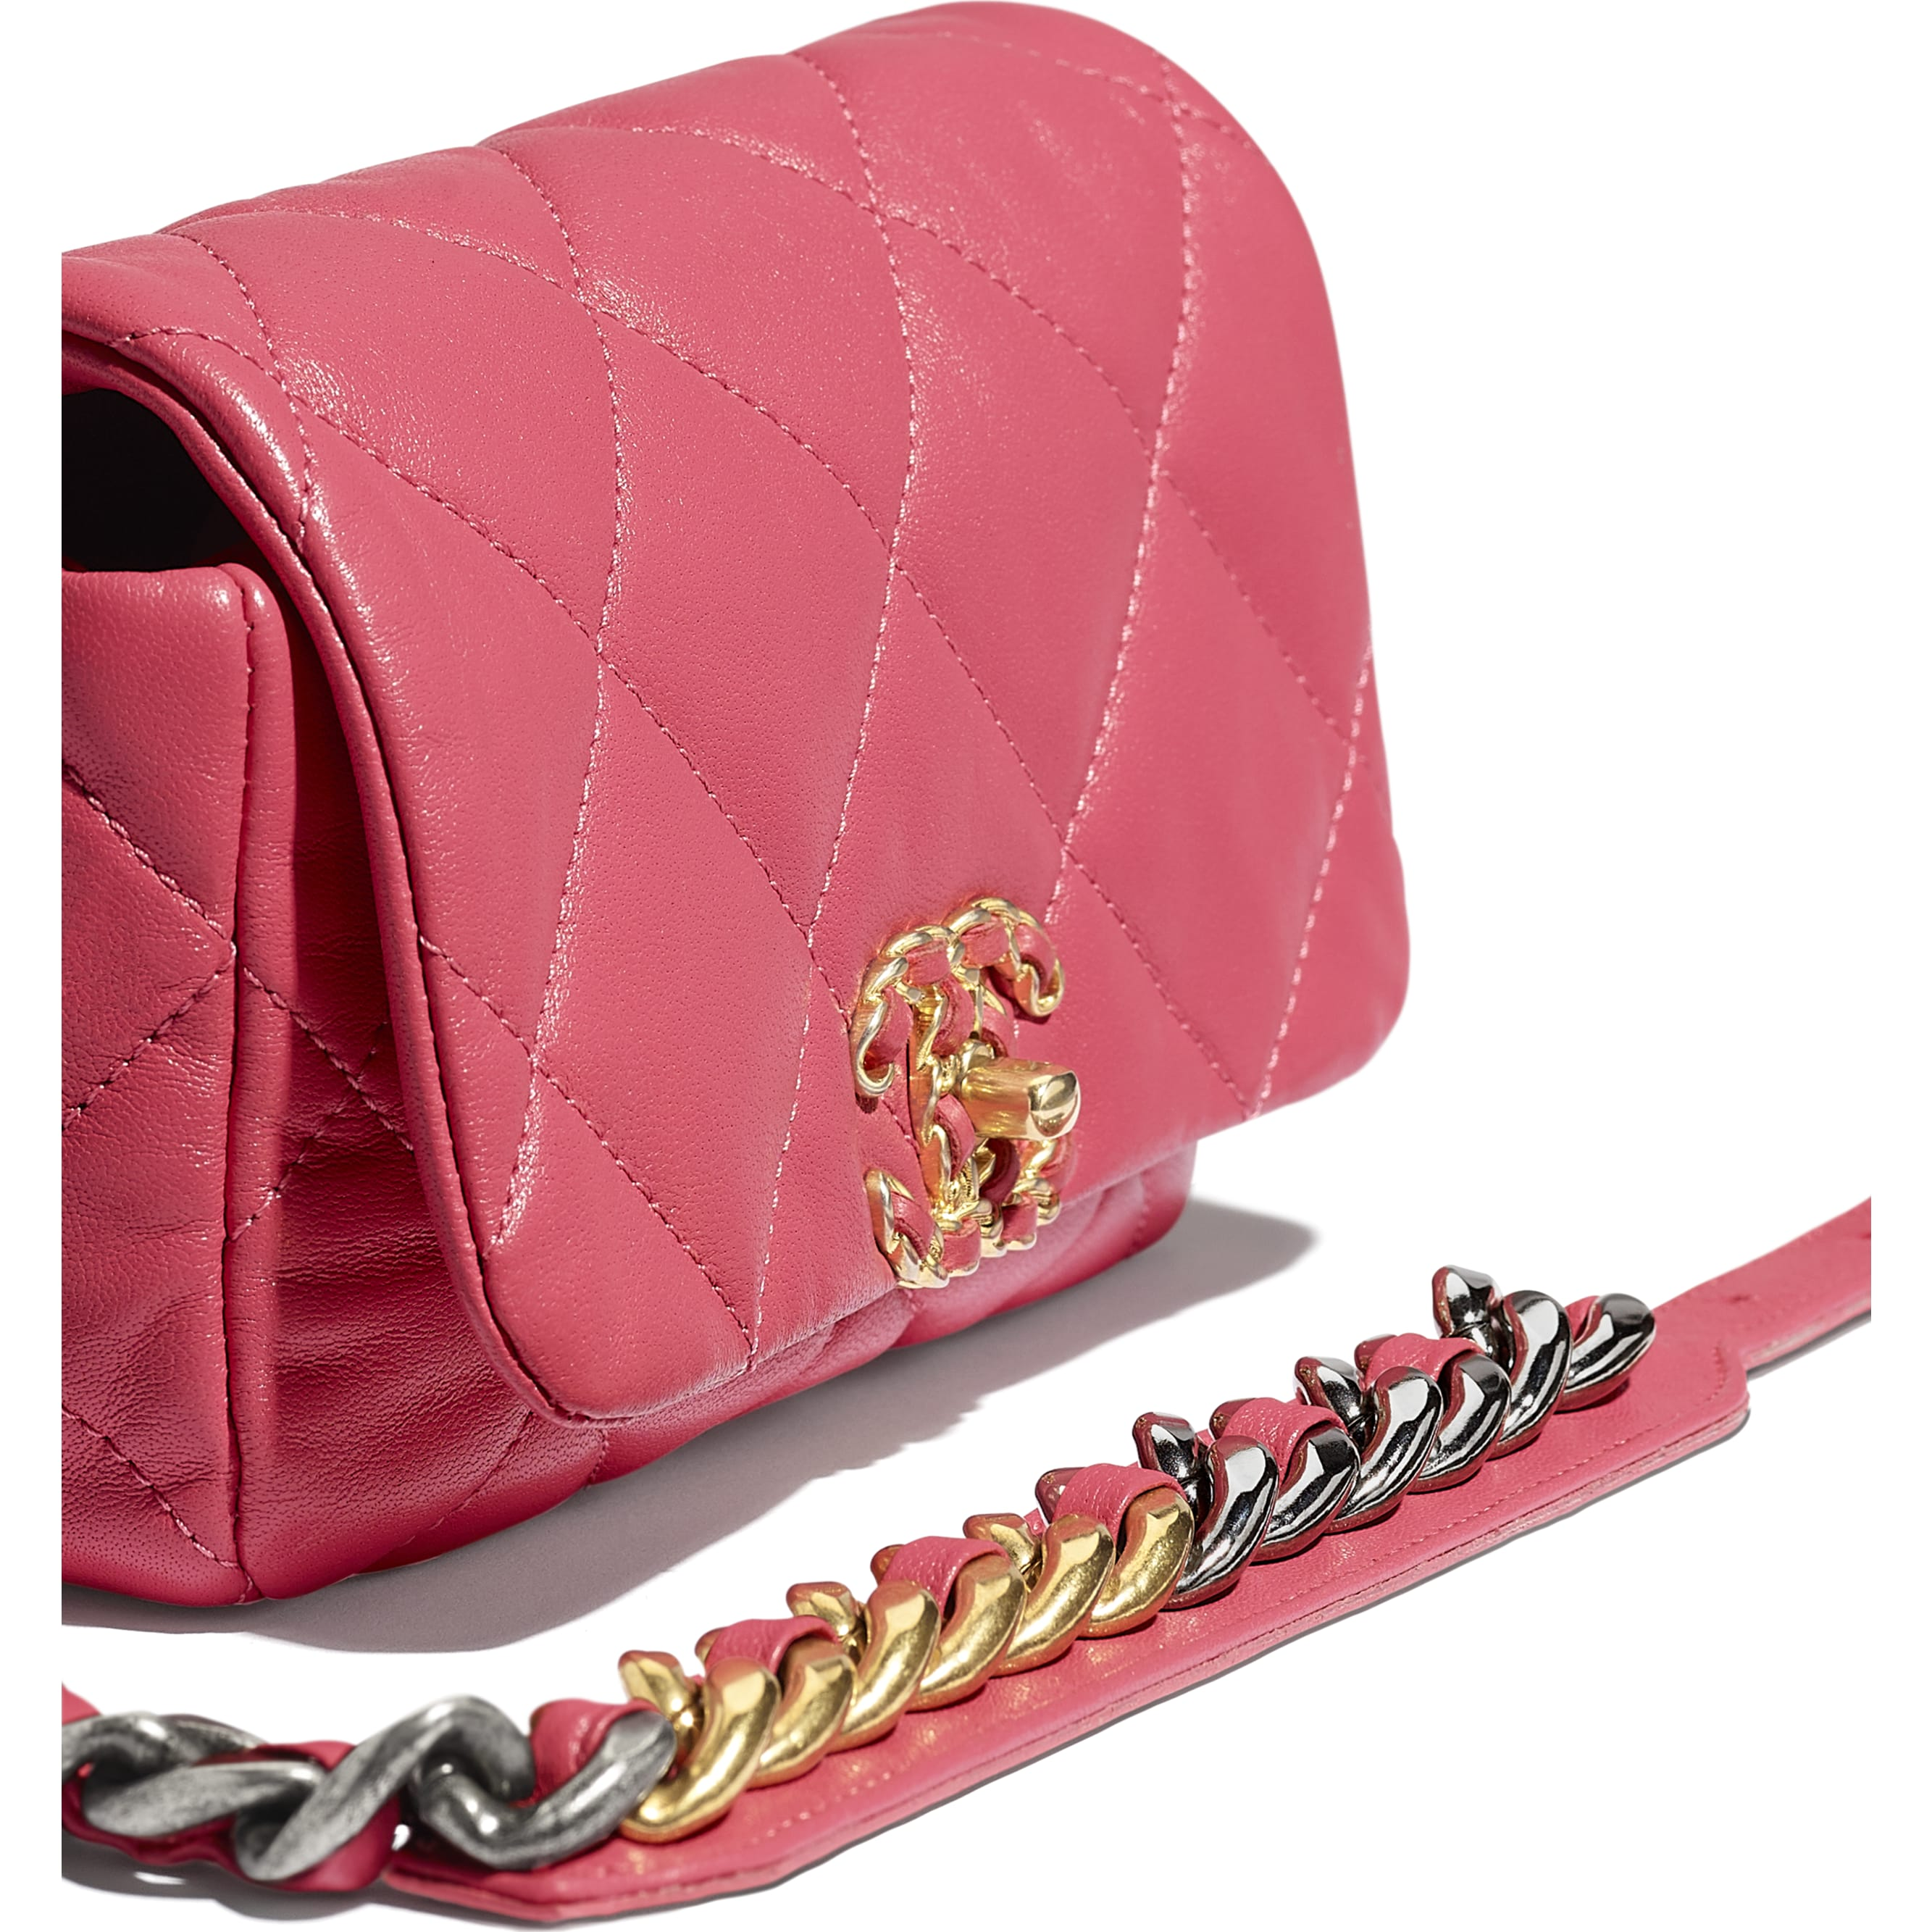 CHANEL 19 Waist Bag - Pink - Lambskin, Gold-Tone, Silver-Tone & Ruthenium-Finish Metal - CHANEL - Extra view - see standard sized version